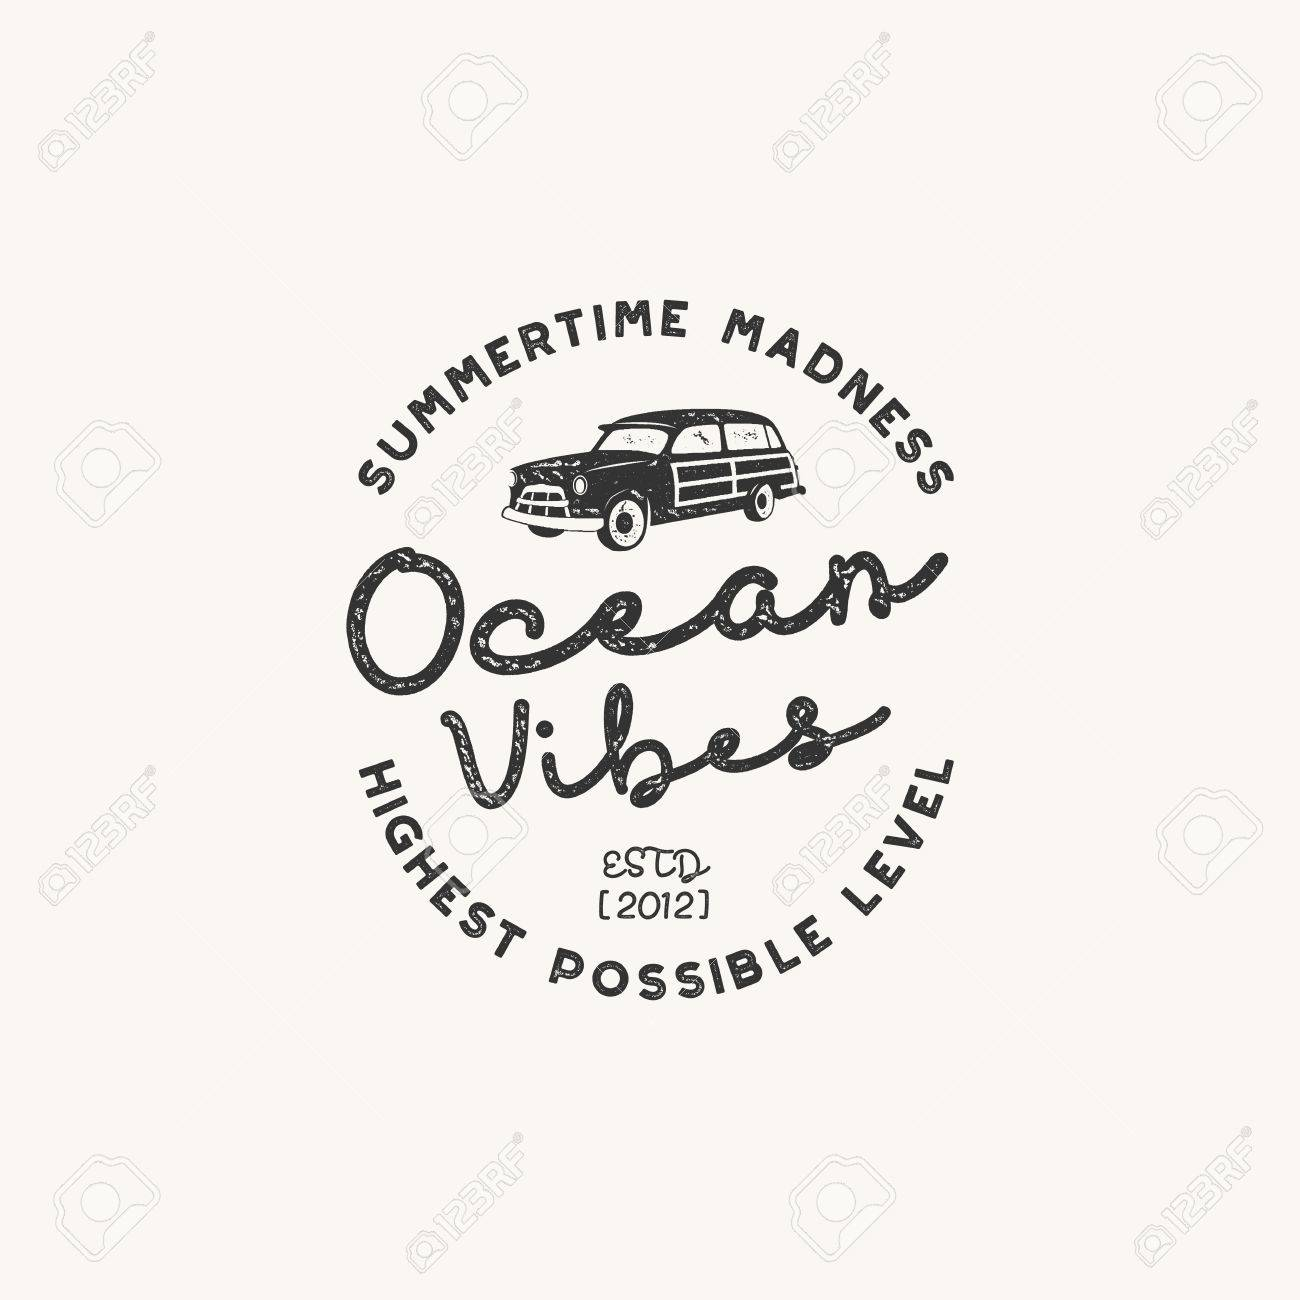 5551aa5b 79262078-vintage-hand-drawn-label-design-ocean-vibes-sign-with-old-retro- style-surf-car-hipster-tee-apparel-t.jpg